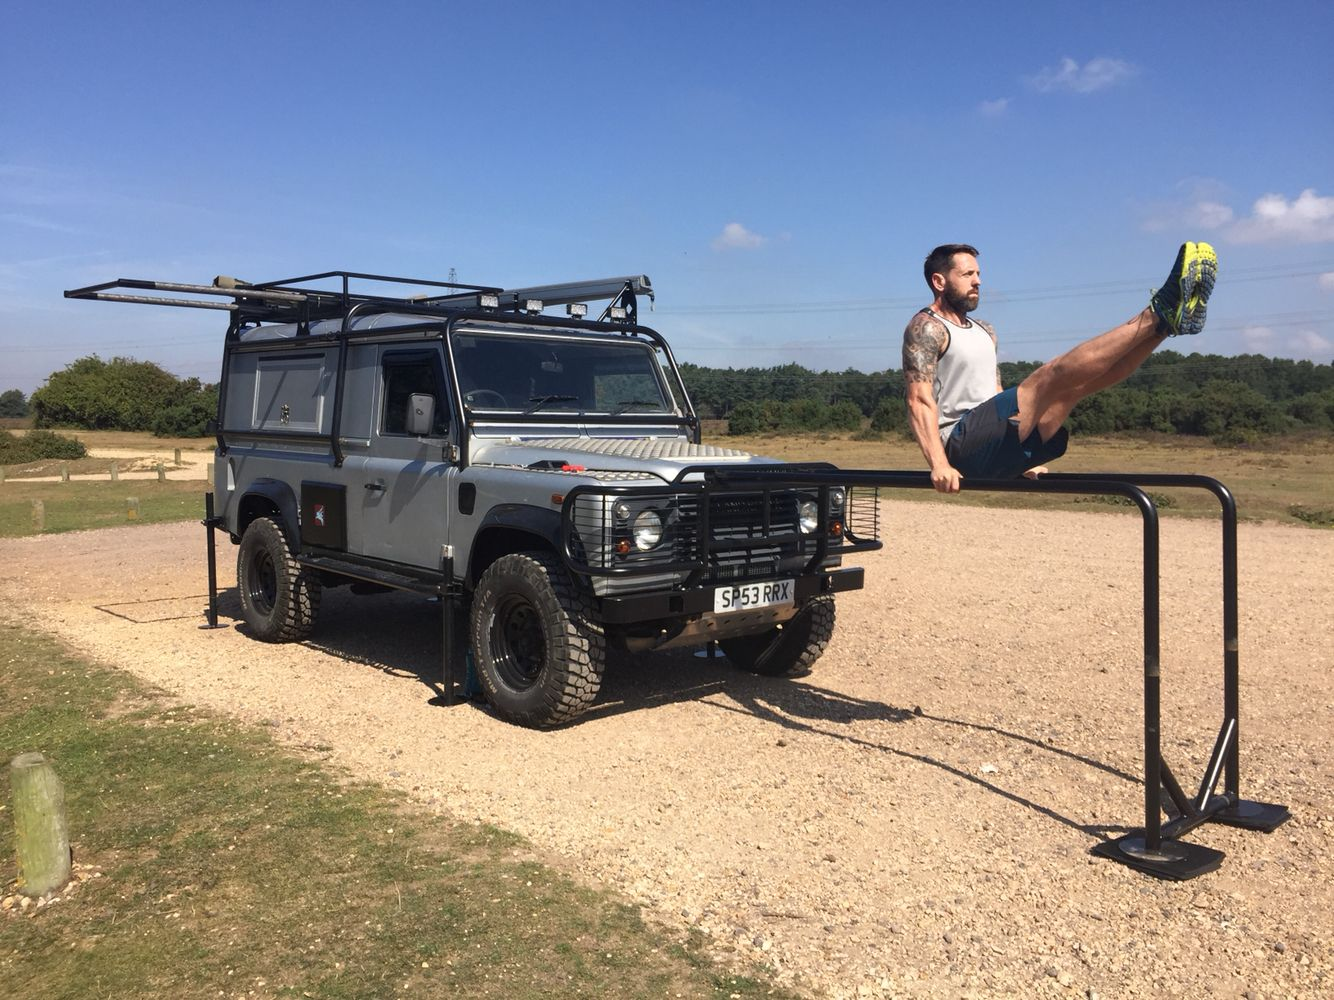 Gym rover training vehicle Land Rover 110 Defender Autos